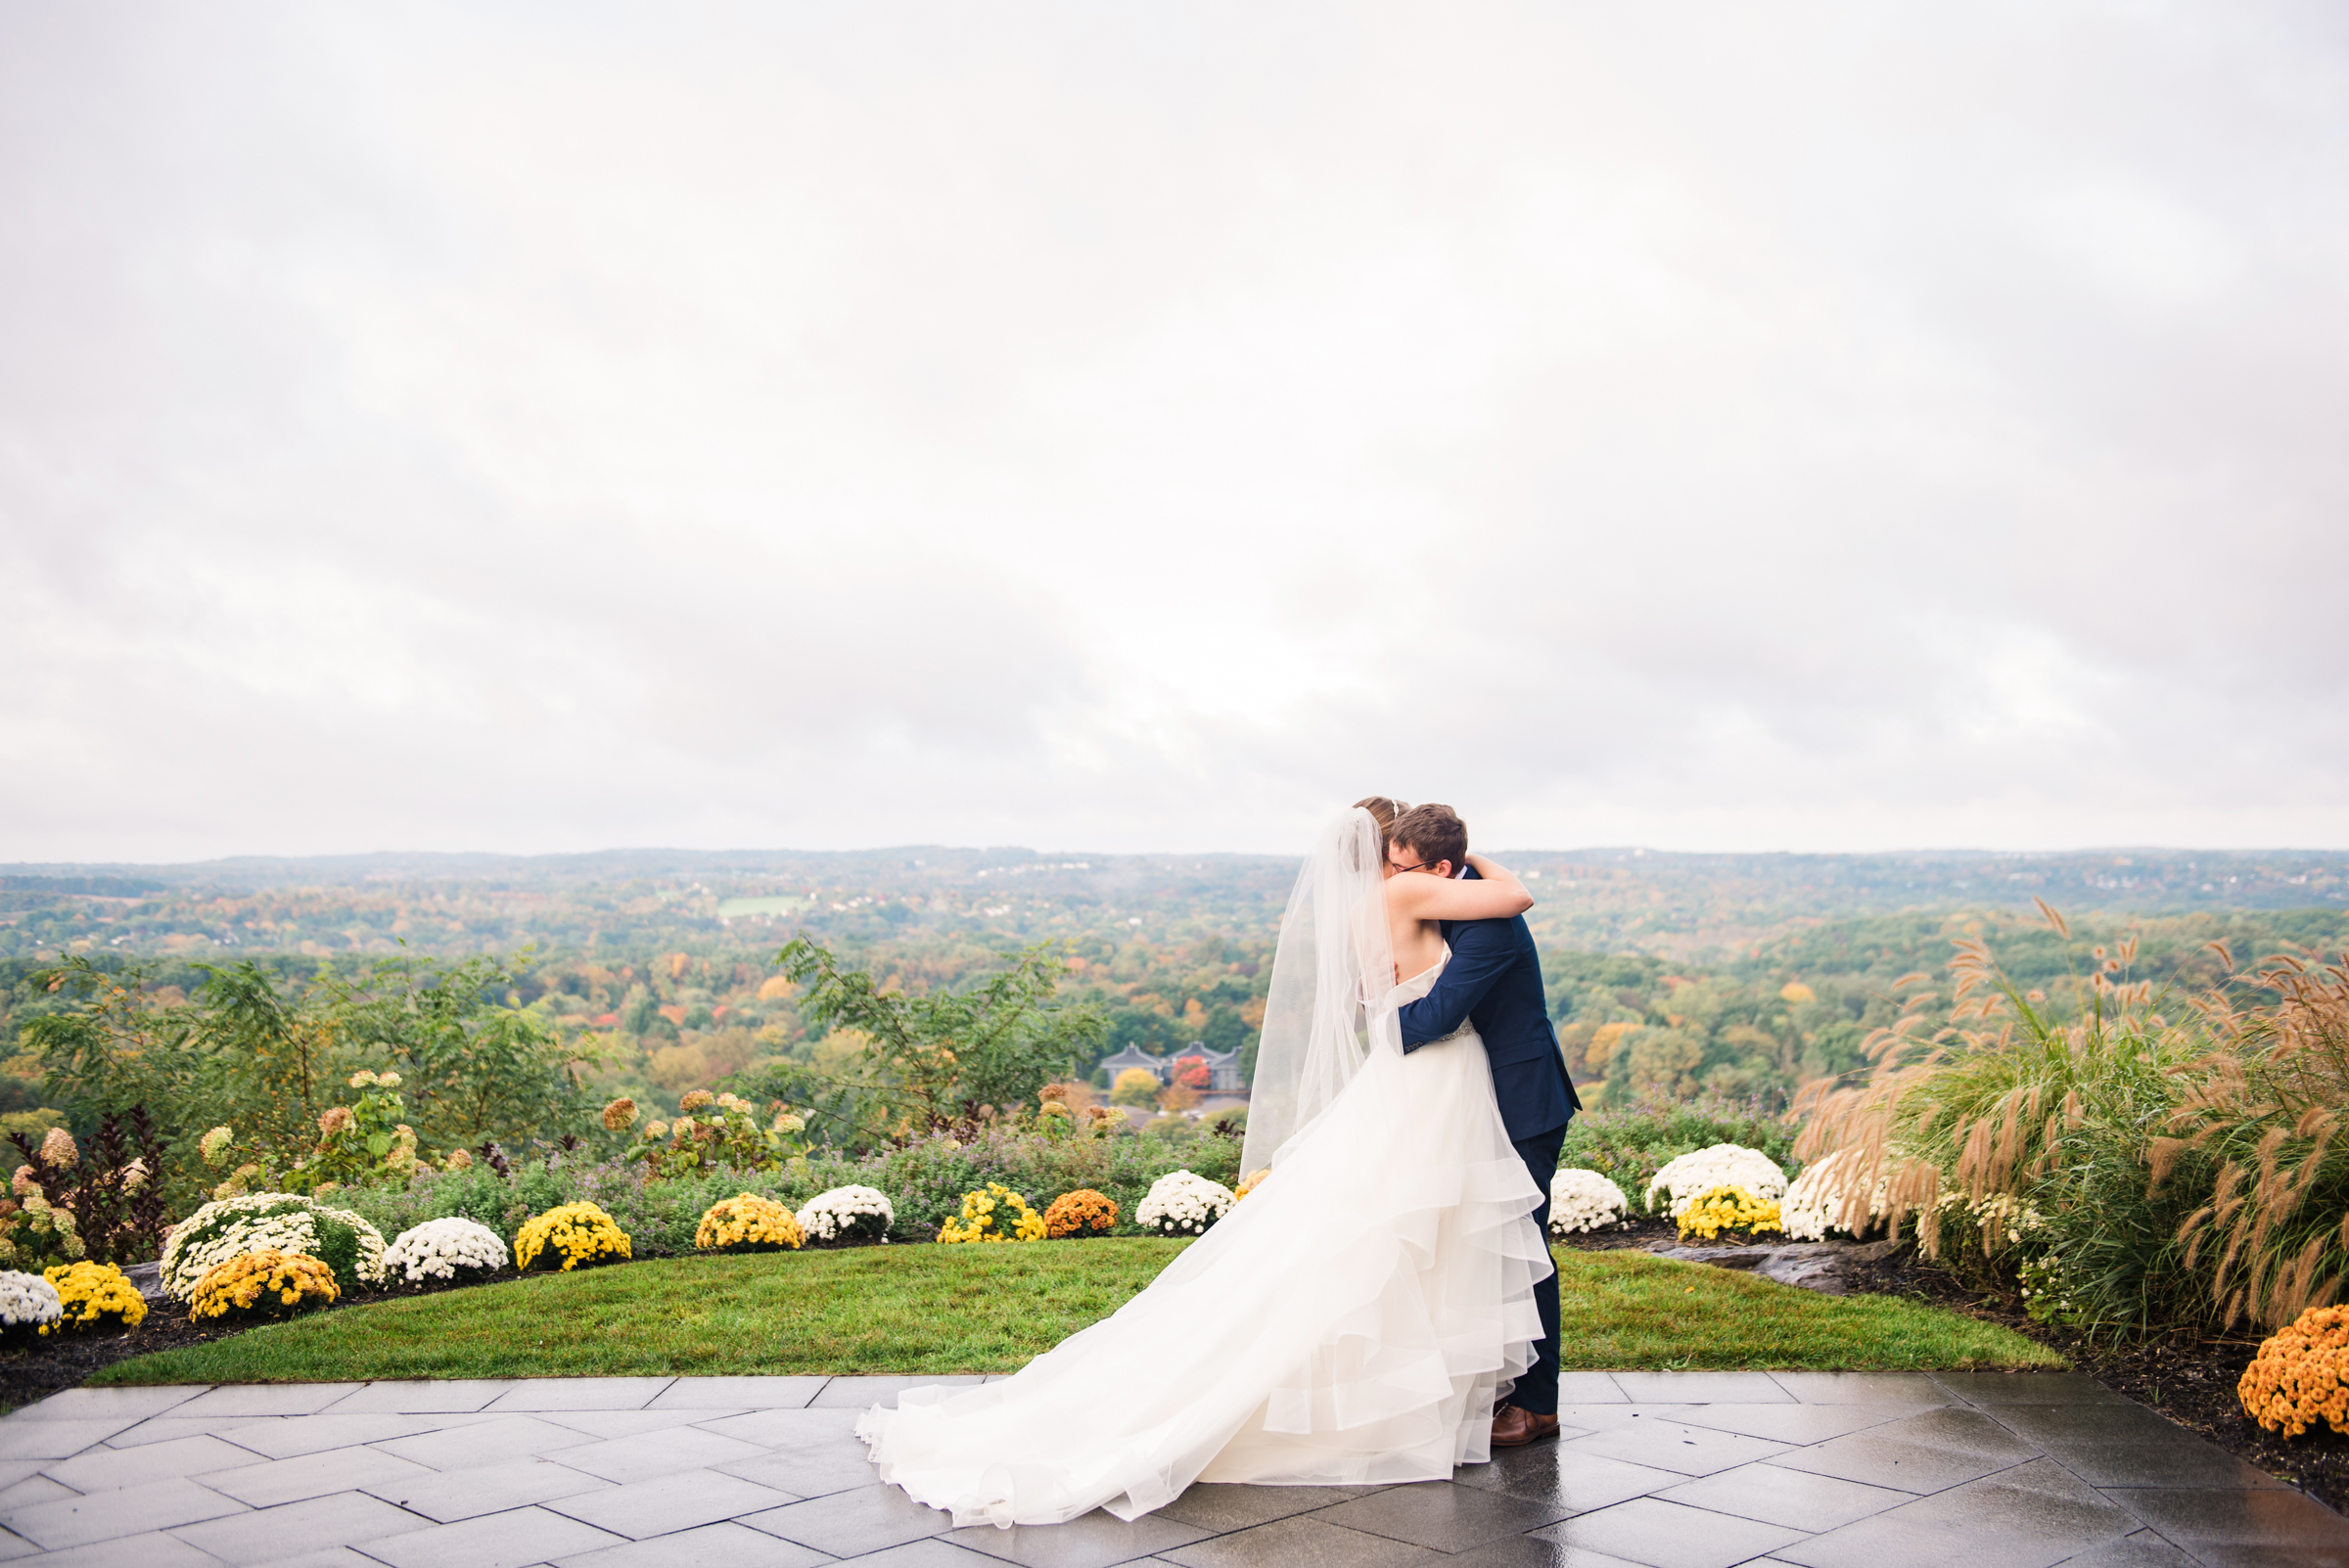 Woodcliff_Hotel_and_Spa_Rochester_Wedding_JILL_STUDIO_Rochester_NY_Photographer_DSC_2230.jpg